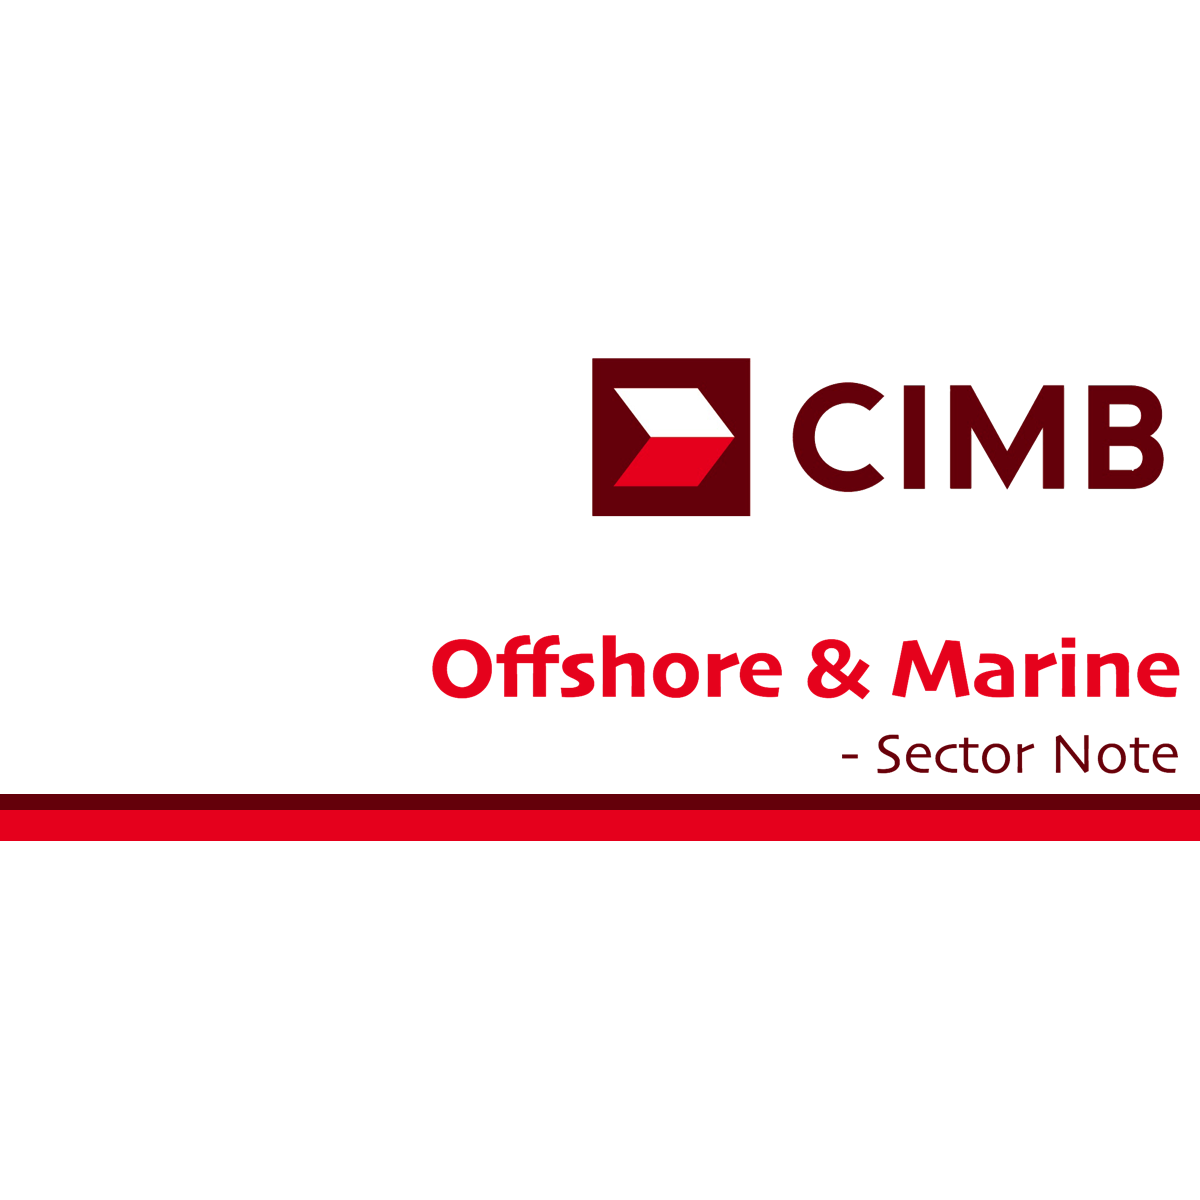 Offshore & Marine - CIMB Research 2017-12-25: Brazilian Grinch